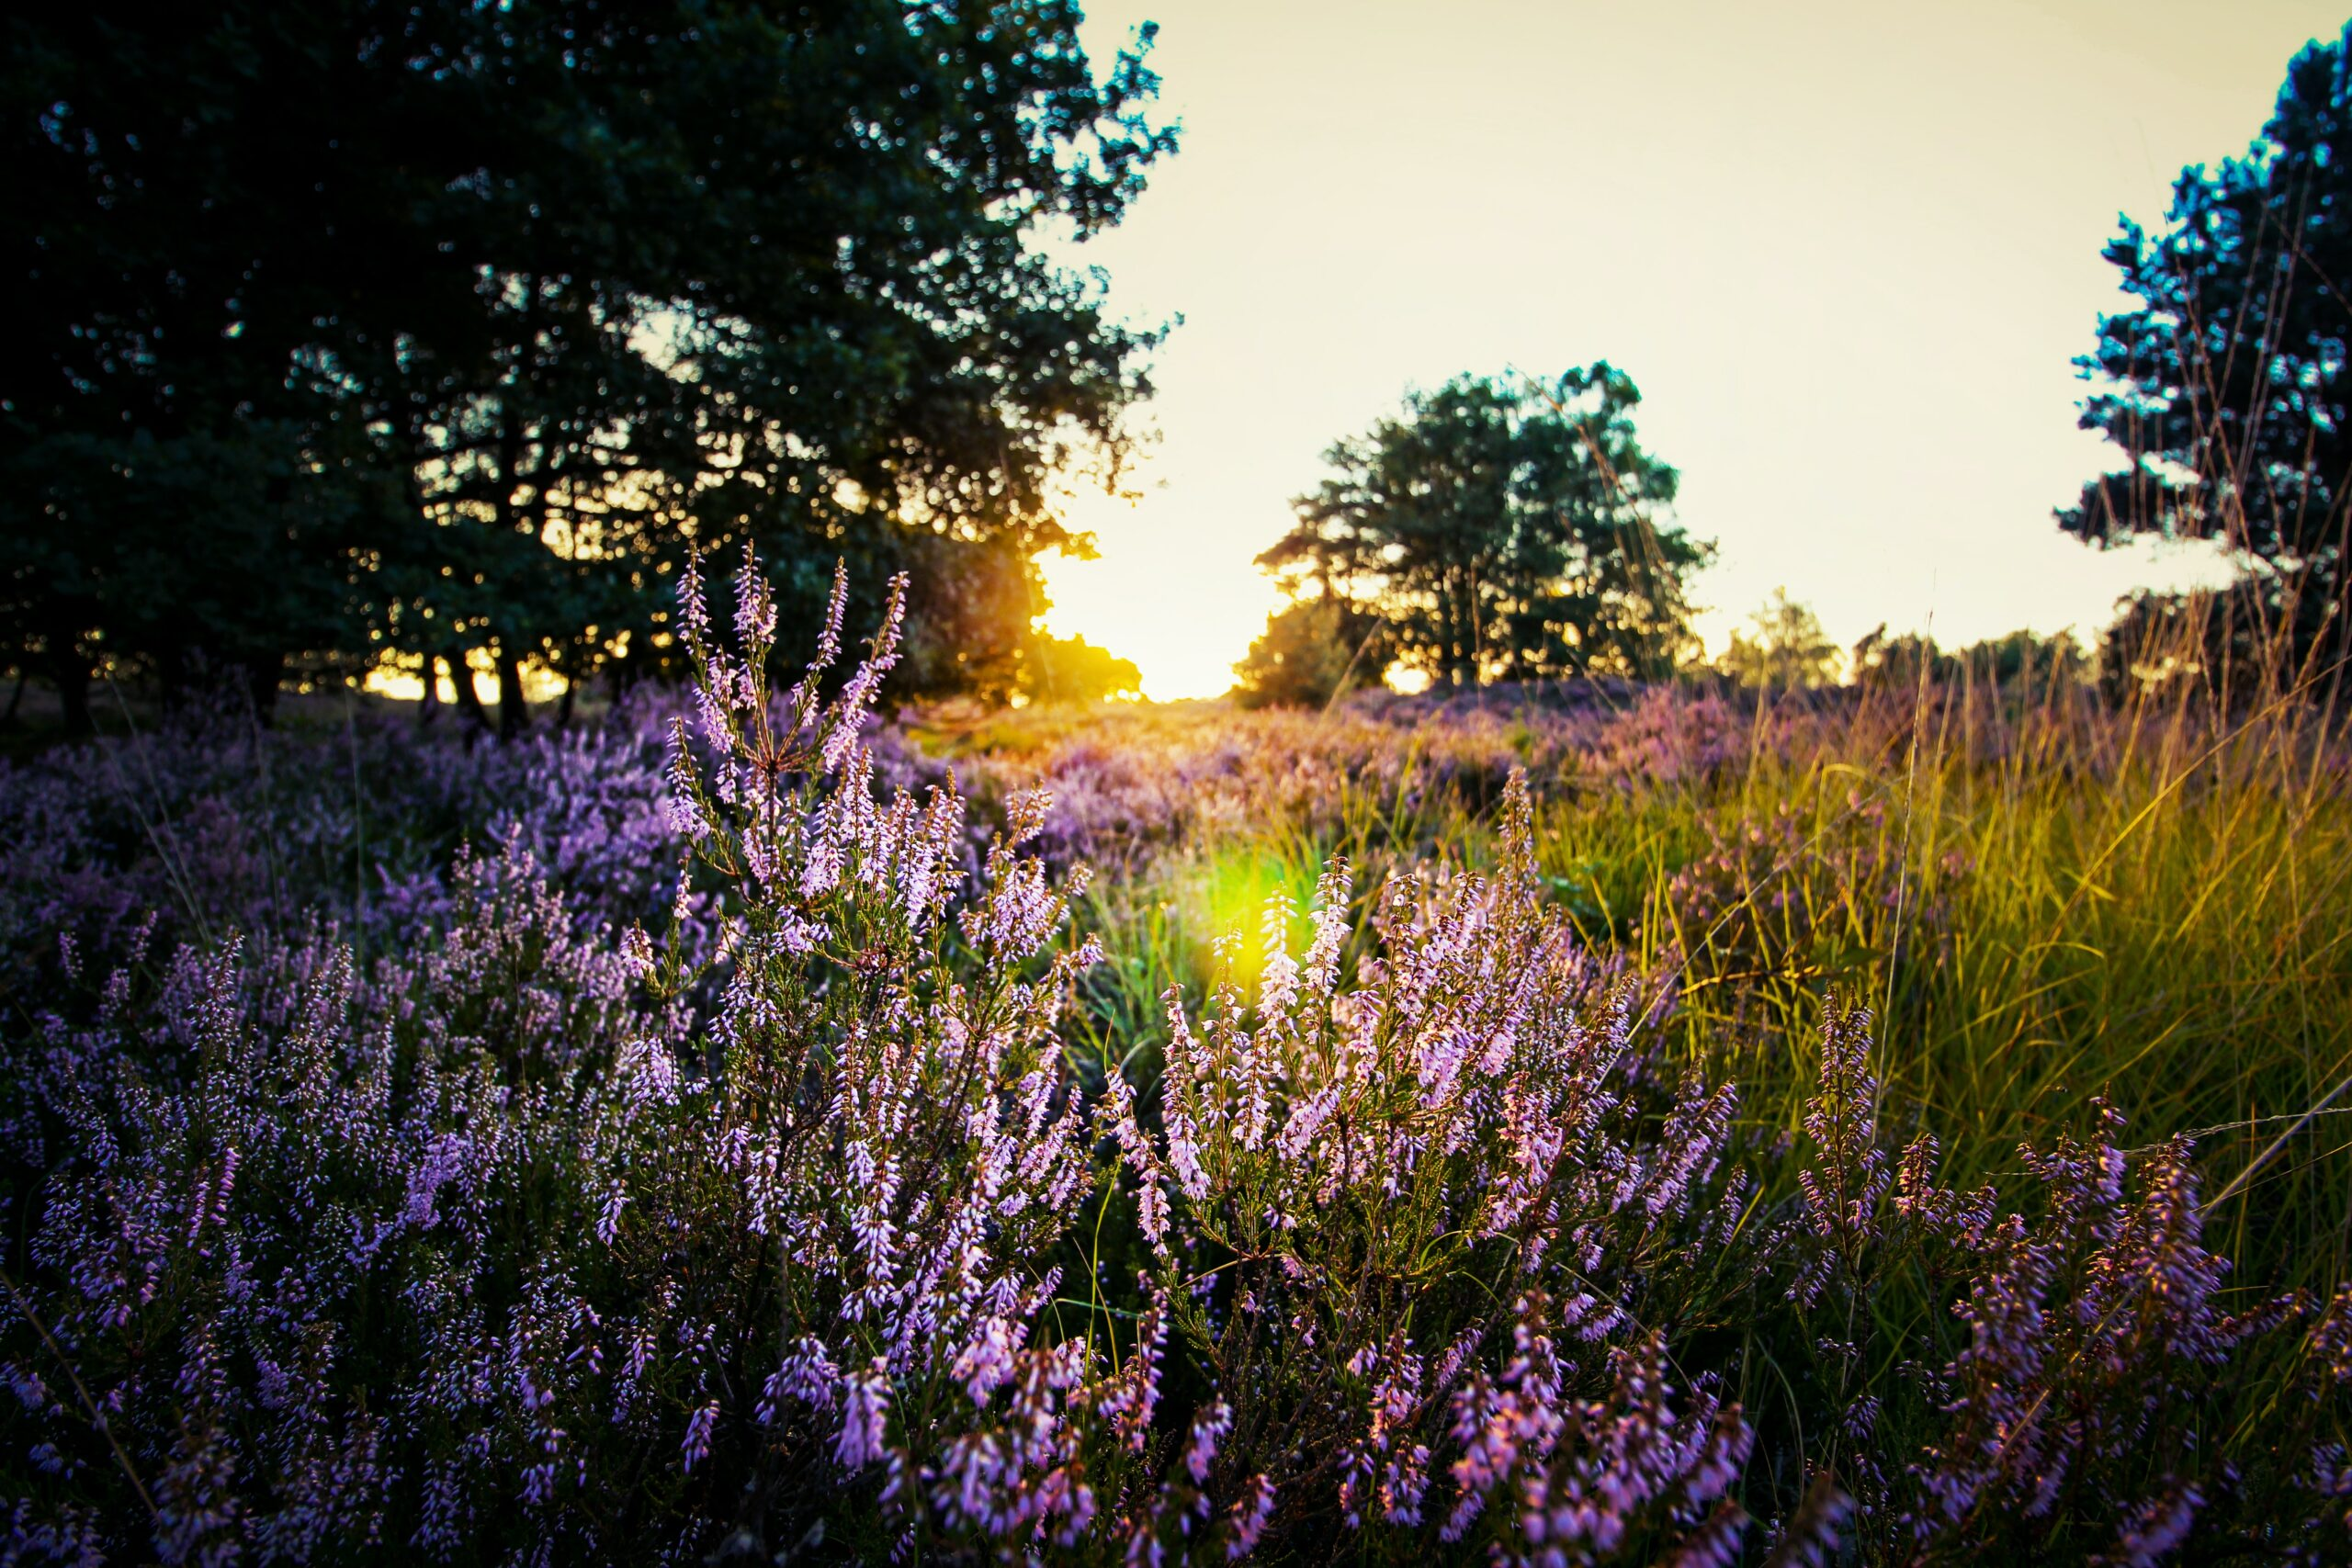 purple-lavender-on-field-during-sunset-723880